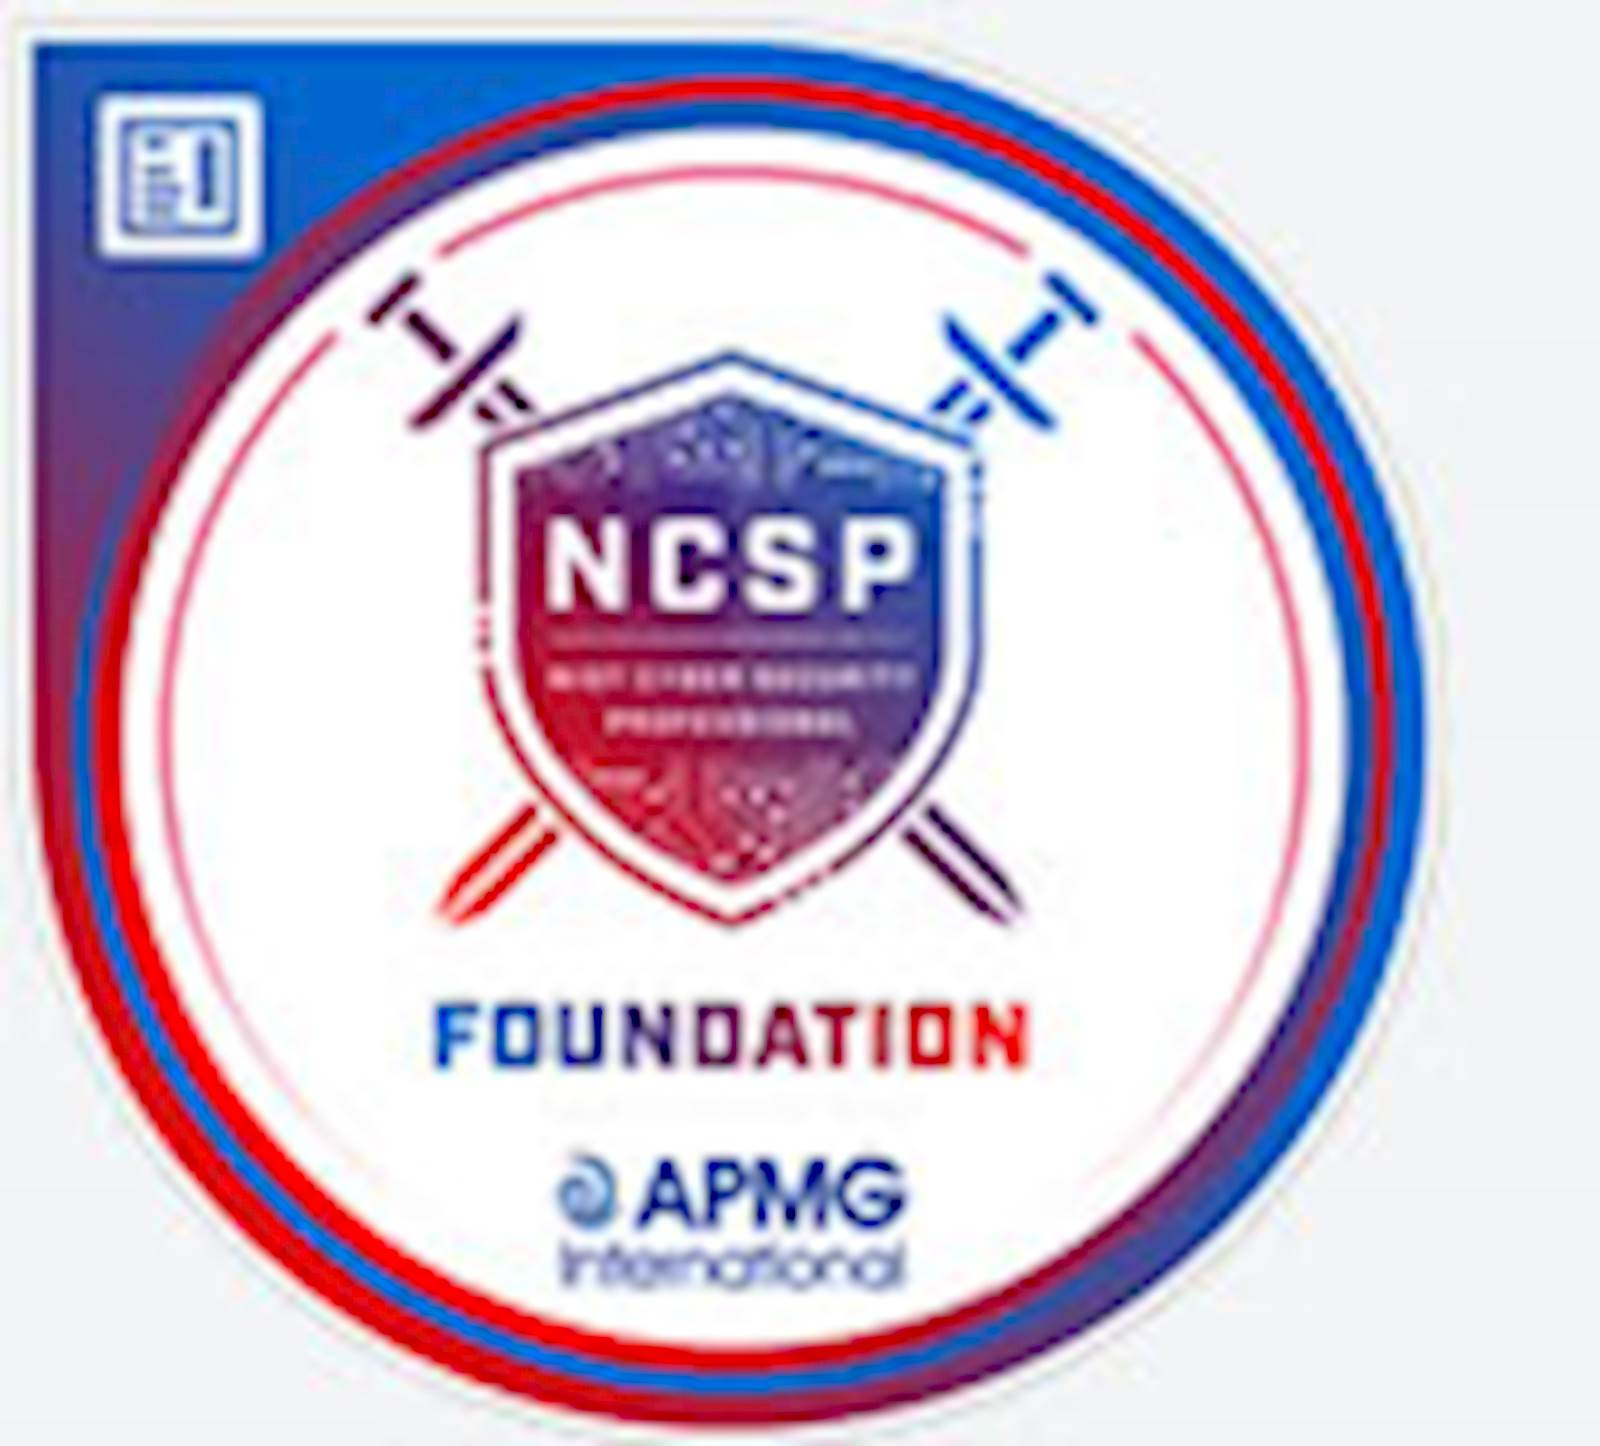 NCSF Foundation Certification logo